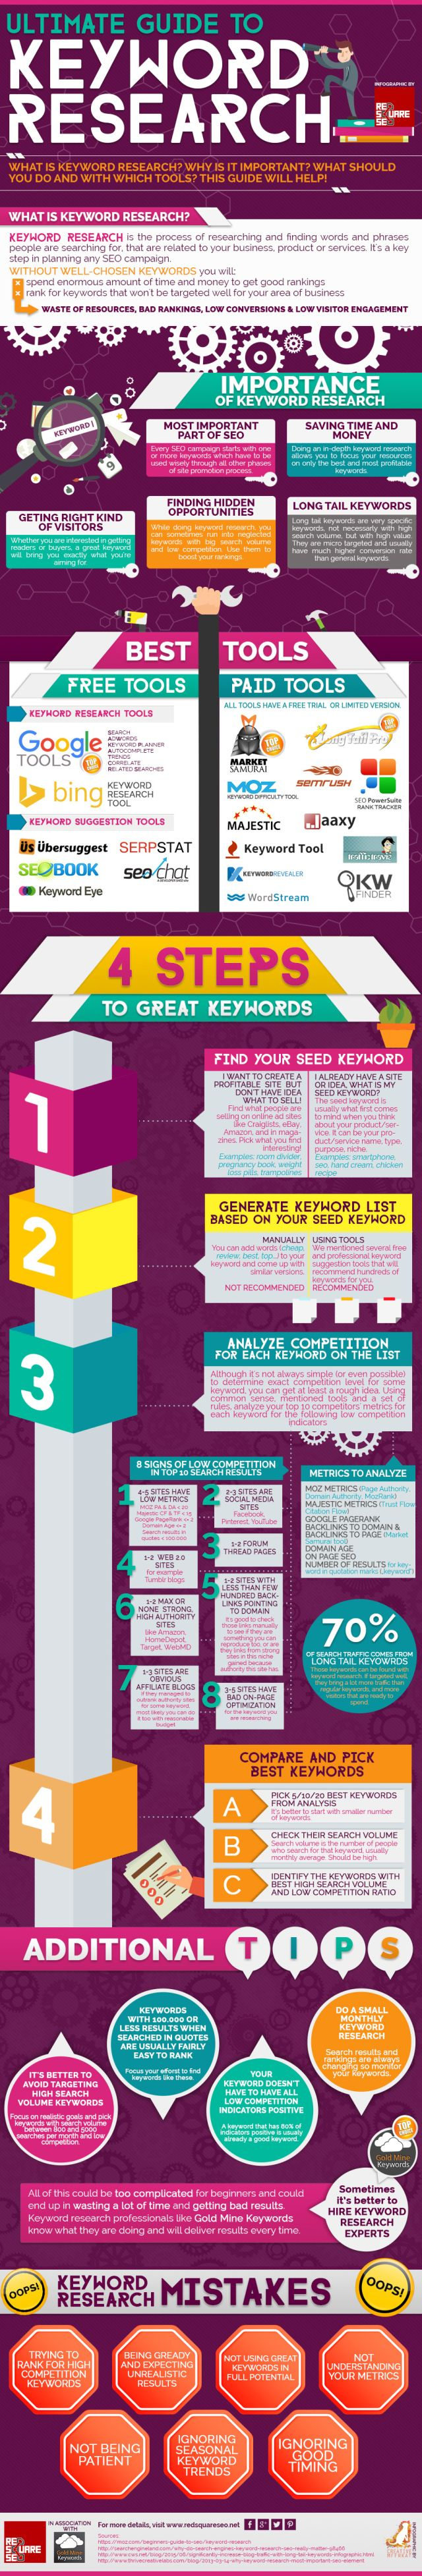 What Your Customers Search for on Google A Guide to Keyword Research  #Infographic #SEO